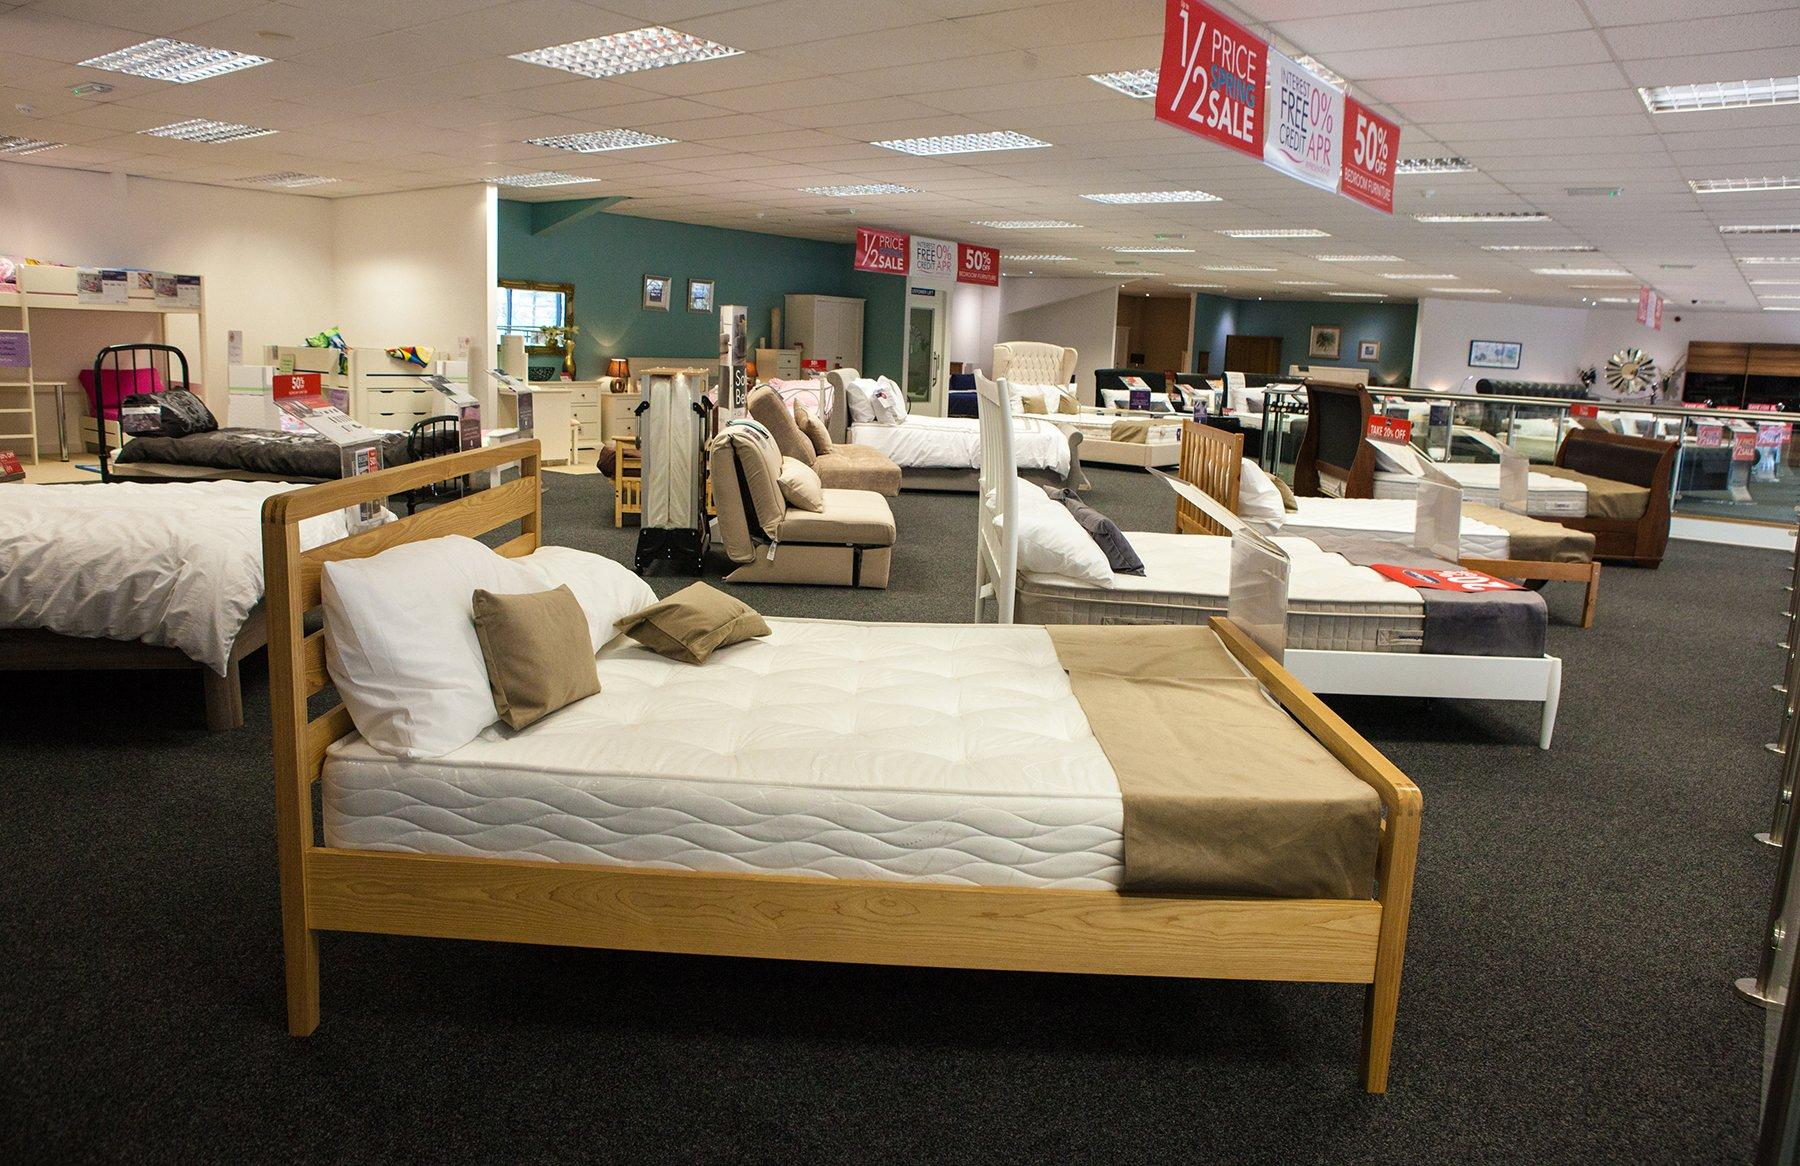 Picture of: Dreams Store In Leeds Crown Point Beds Mattresses Furniture Dreams